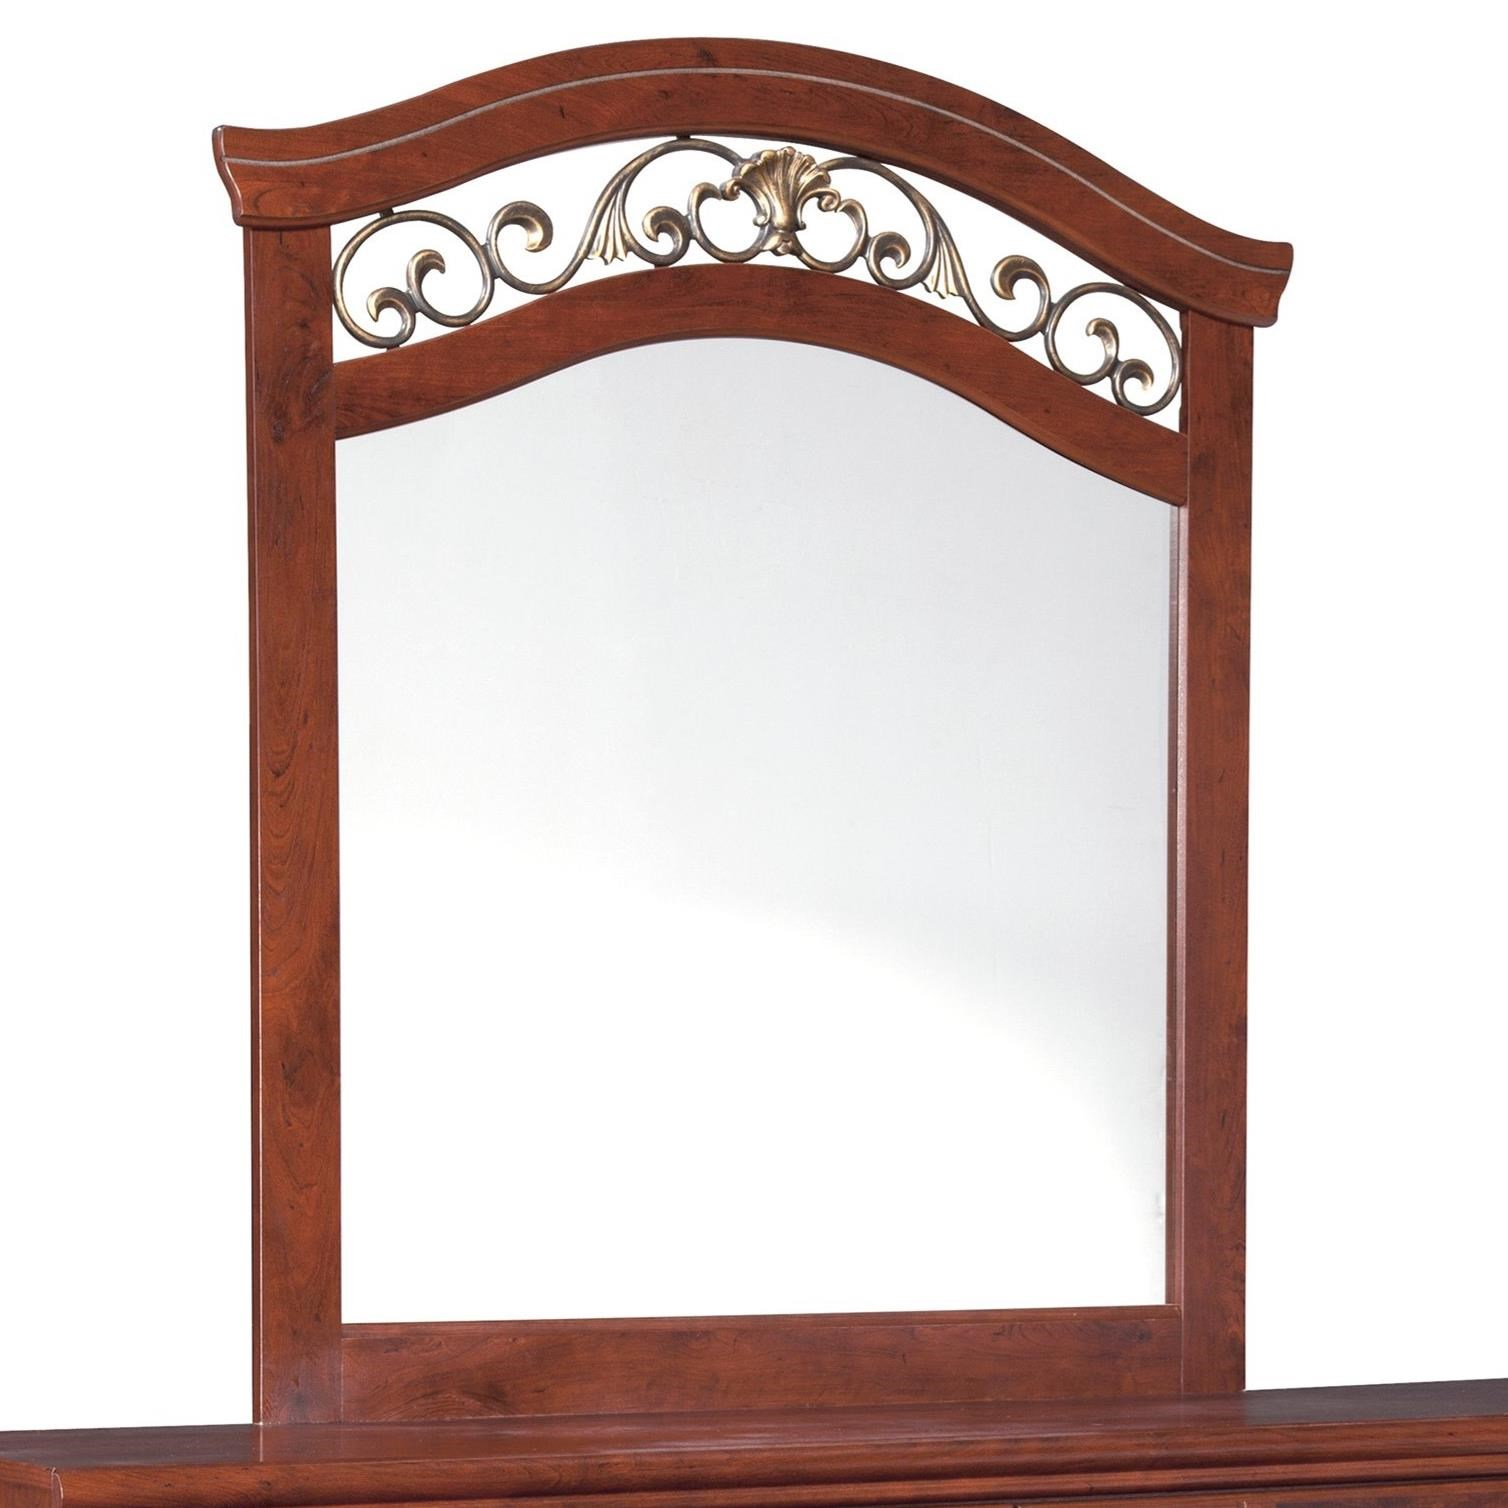 Signature Design by Ashley Delianna Bedroom Mirror - Item Number: B223-36